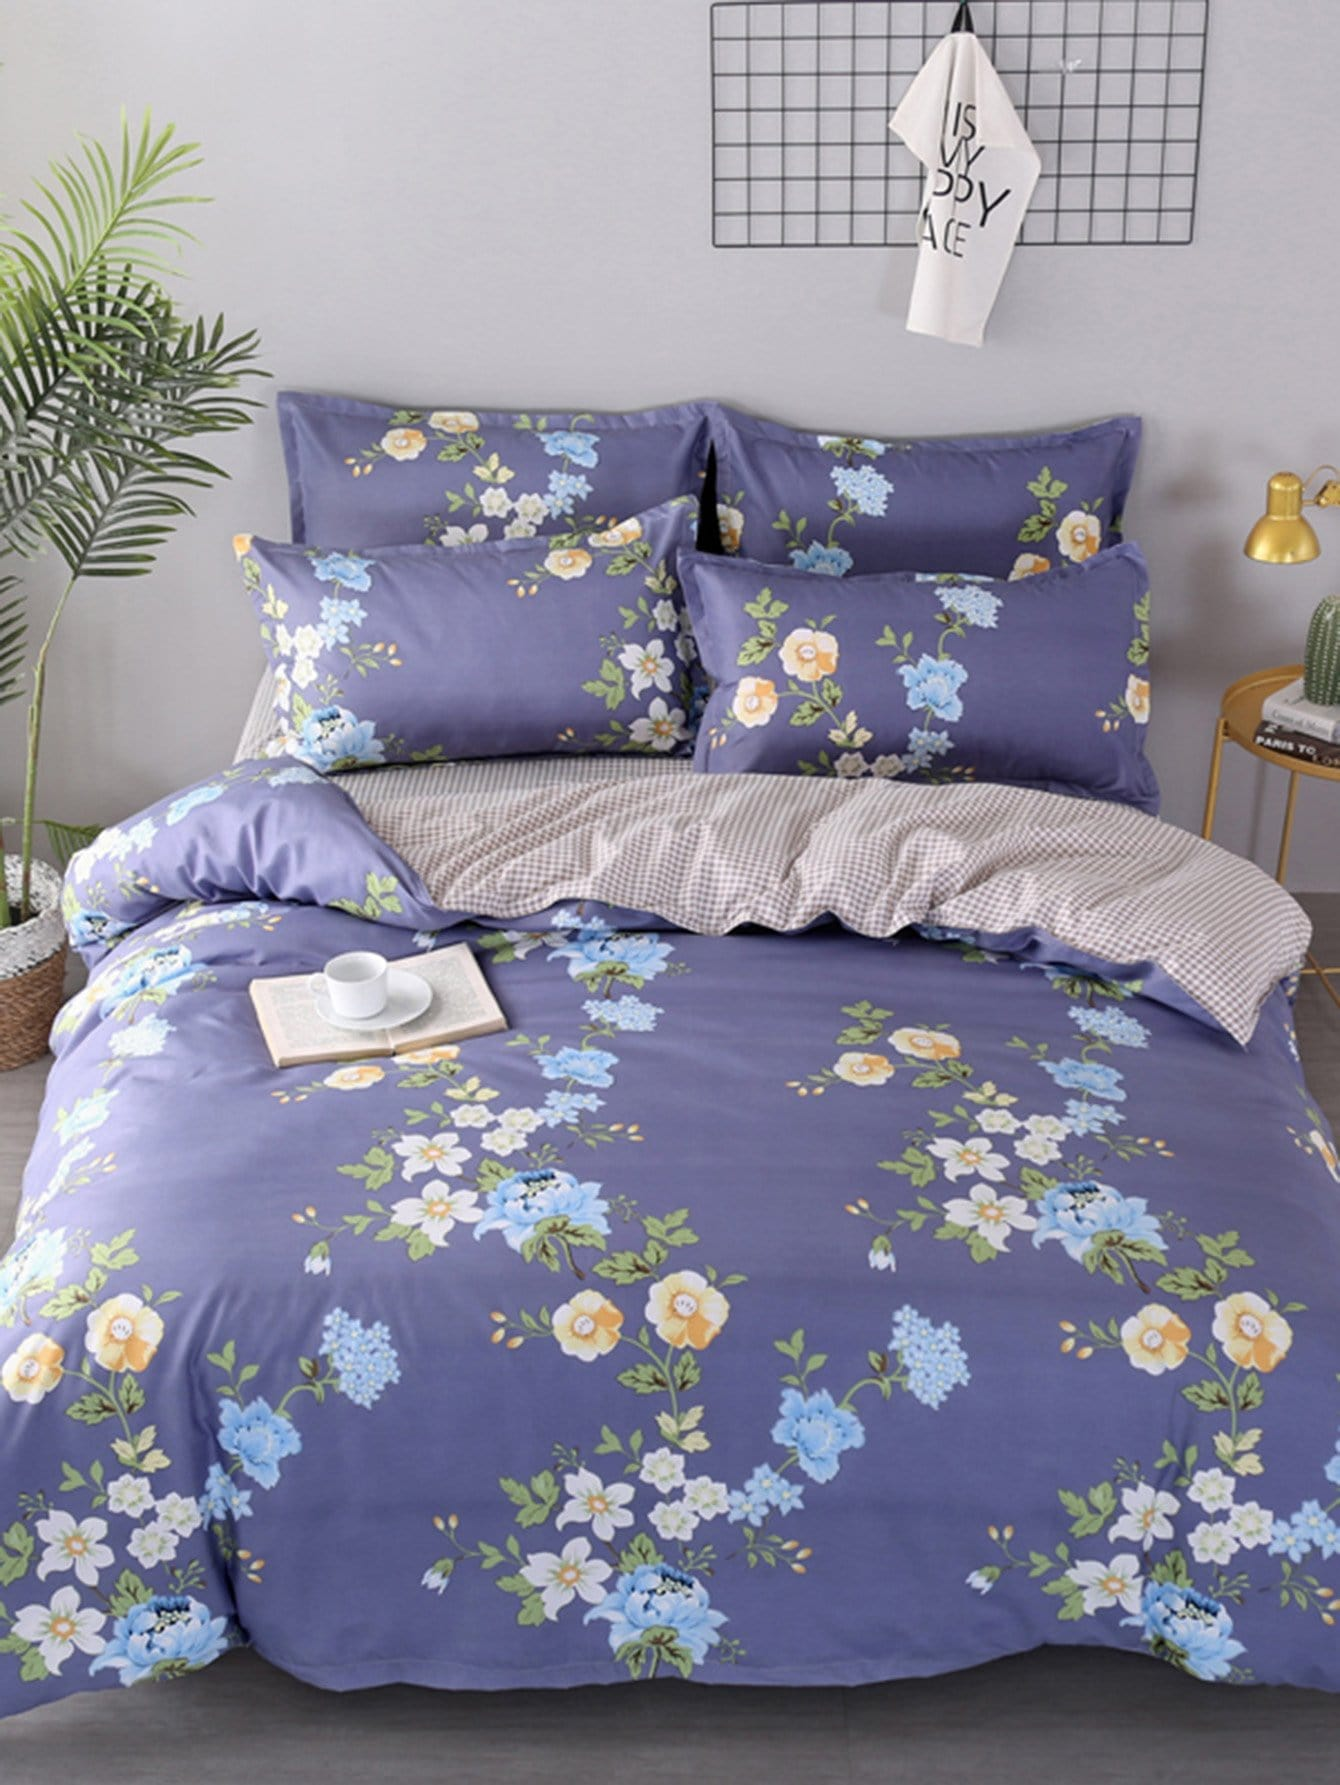 Grid & Flower Print Duvet Cover grid duvet cover set